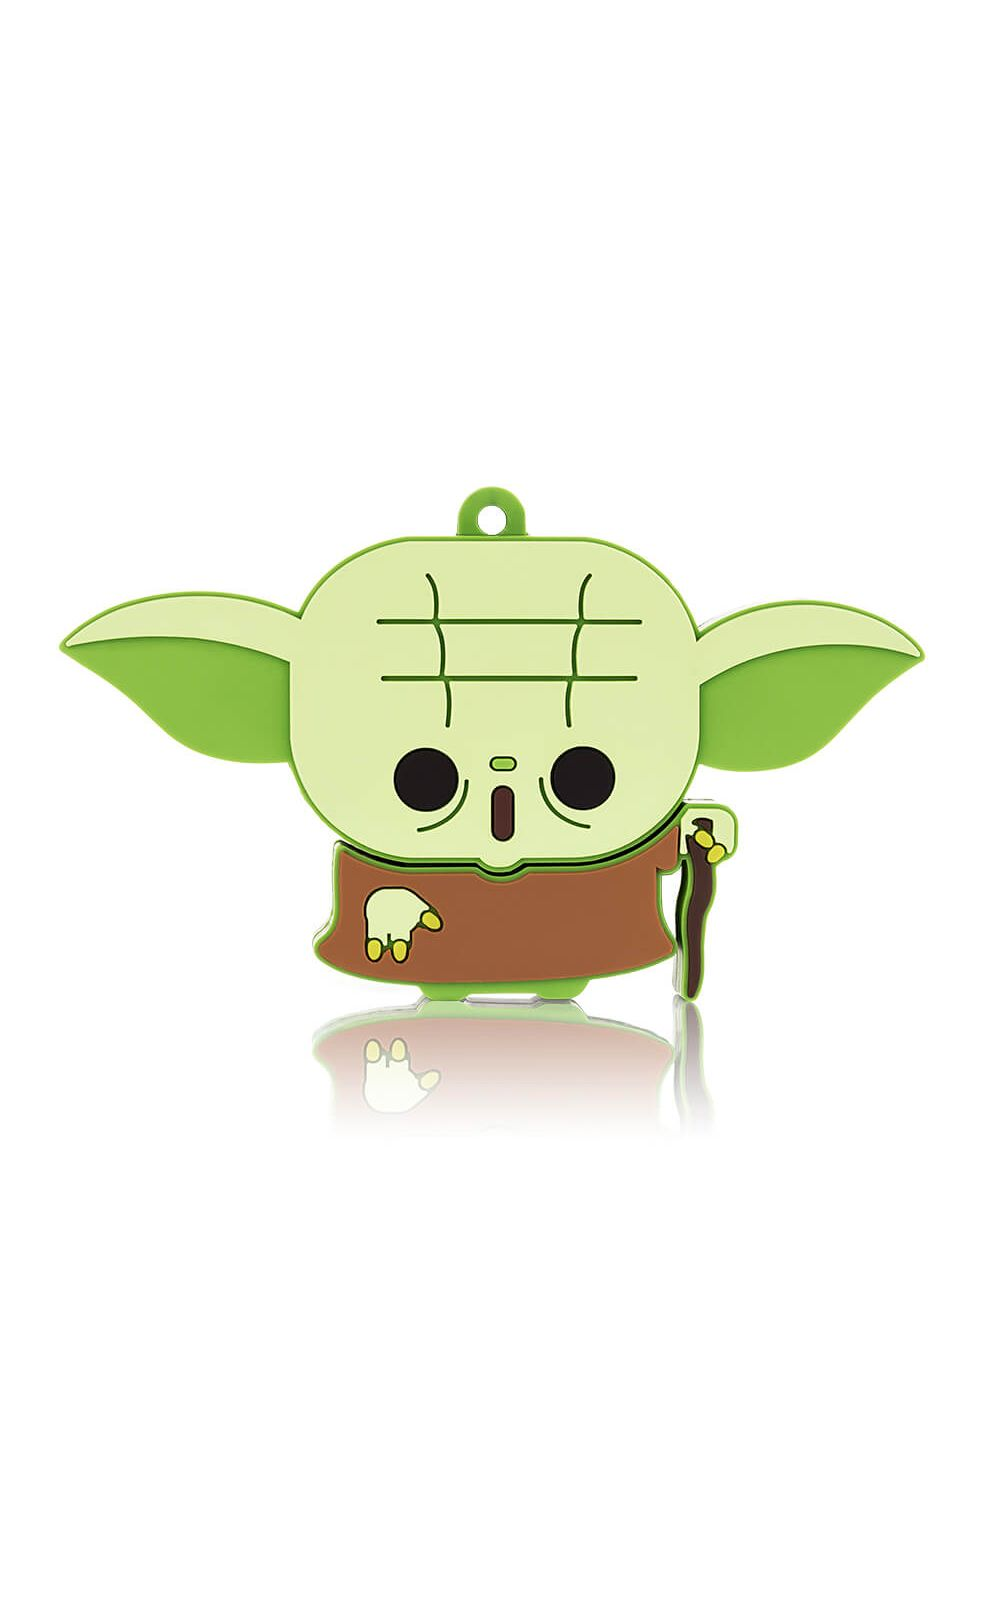 Foto 1 - PENDRIVE YODA 8GB MULTILASER- PD037